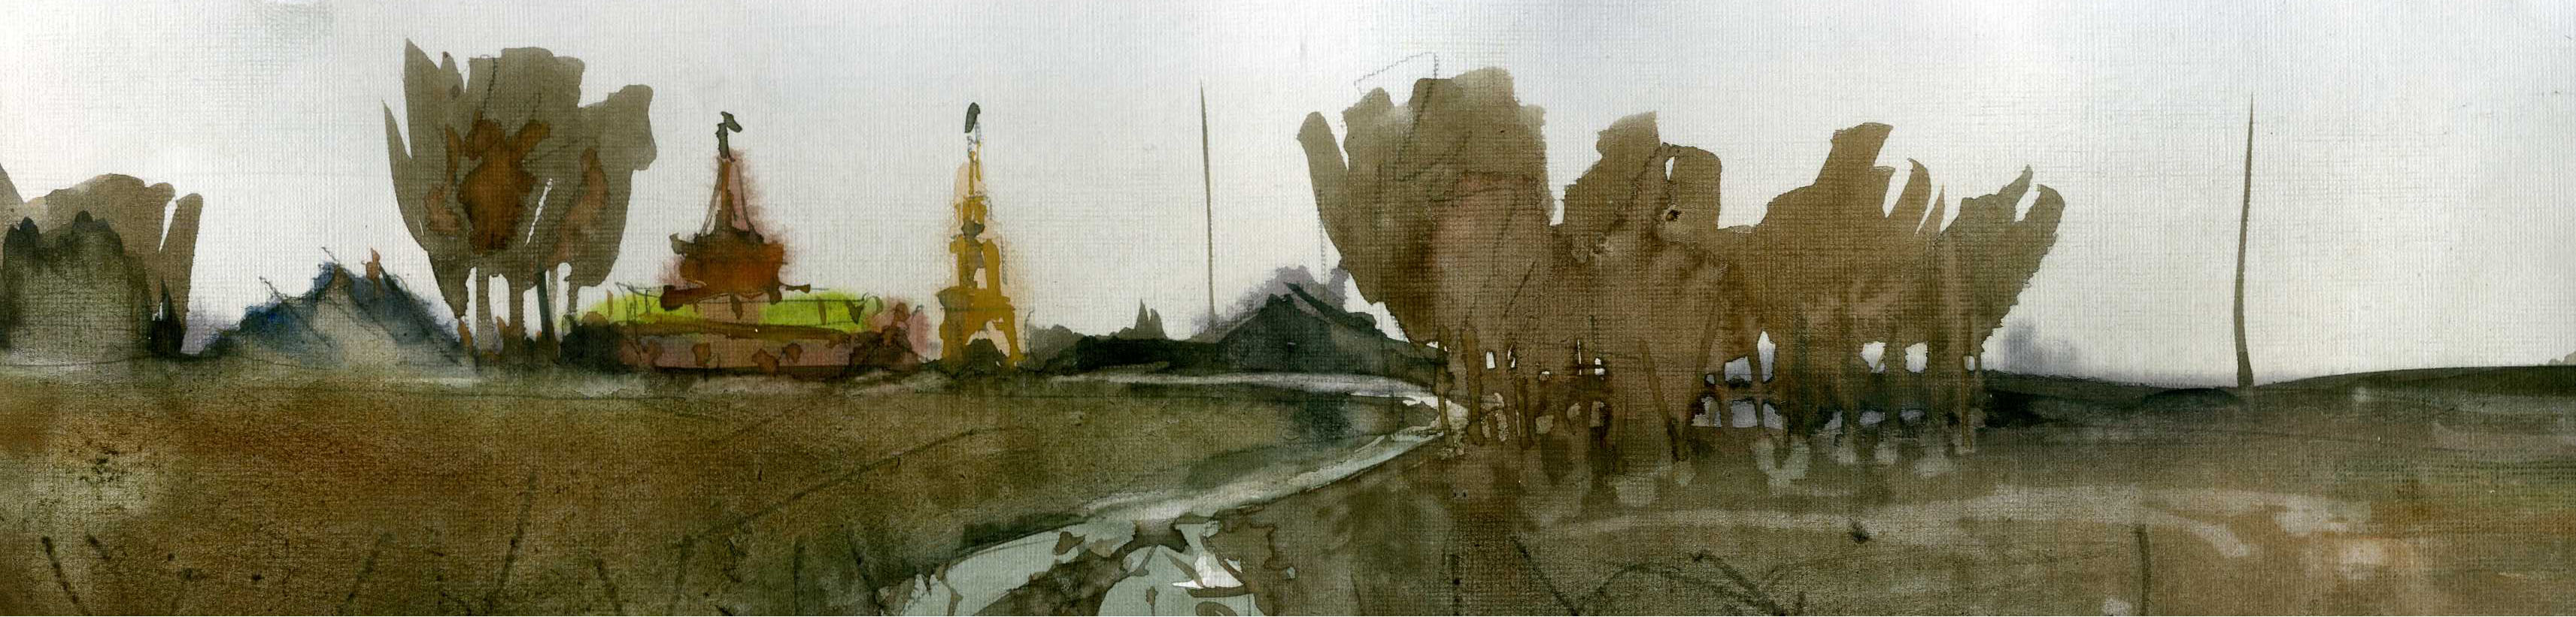 Храмы 24 (Акварель/Watercolor)